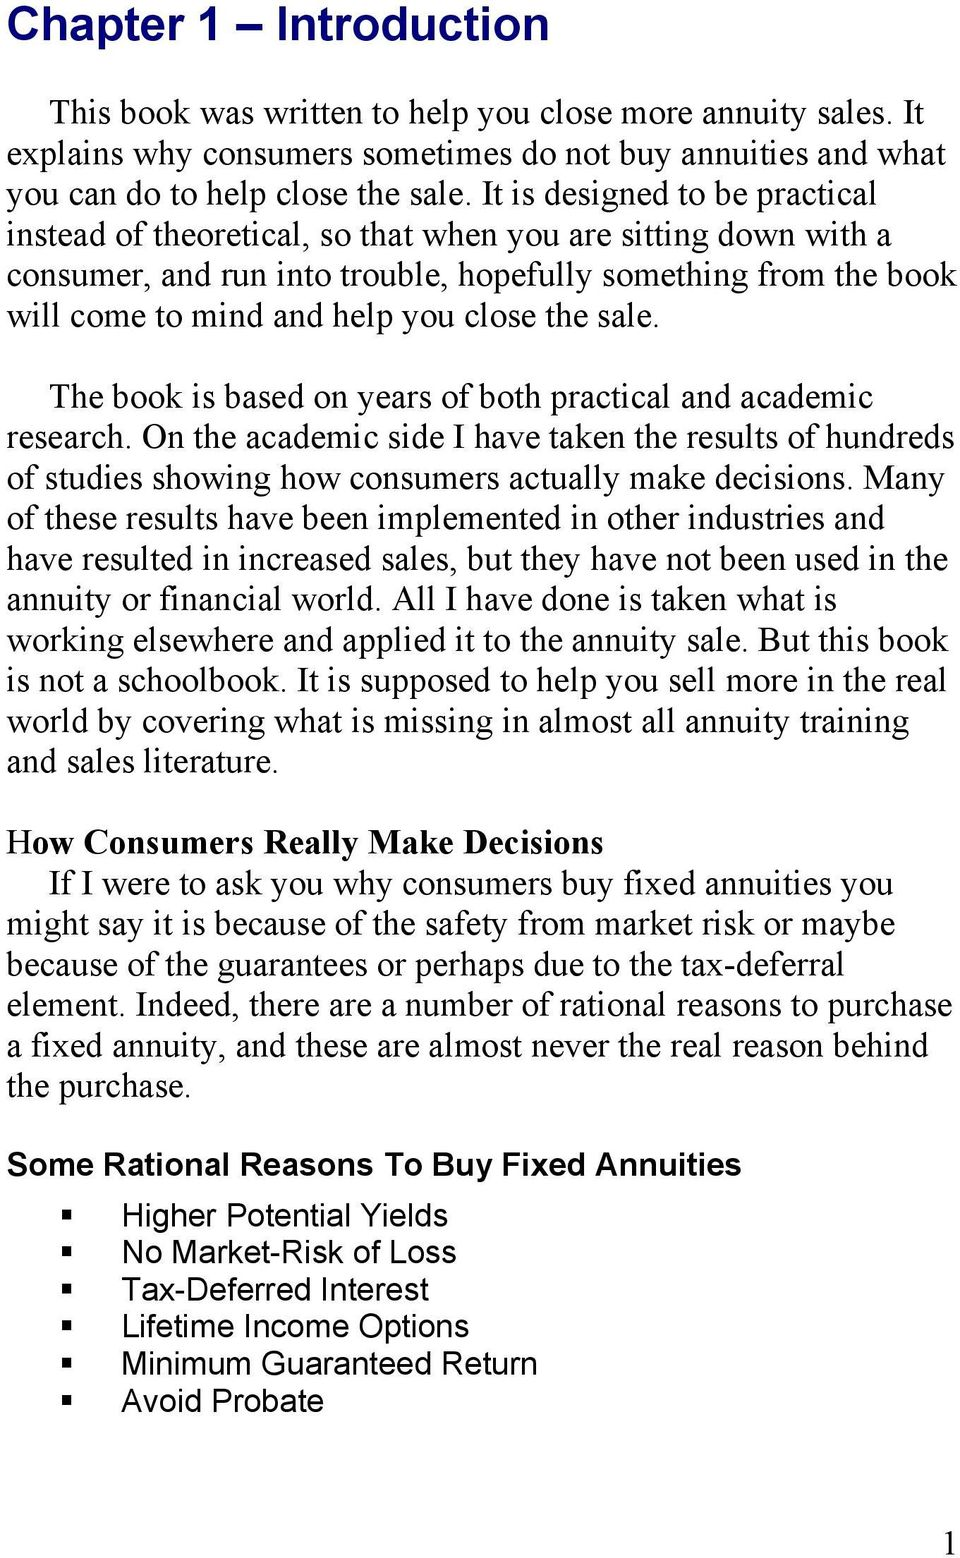 the sale. The book is based on years of both practical and academic research. On the academic side I have taken the results of hundreds of studies showing how consumers actually make decisions.